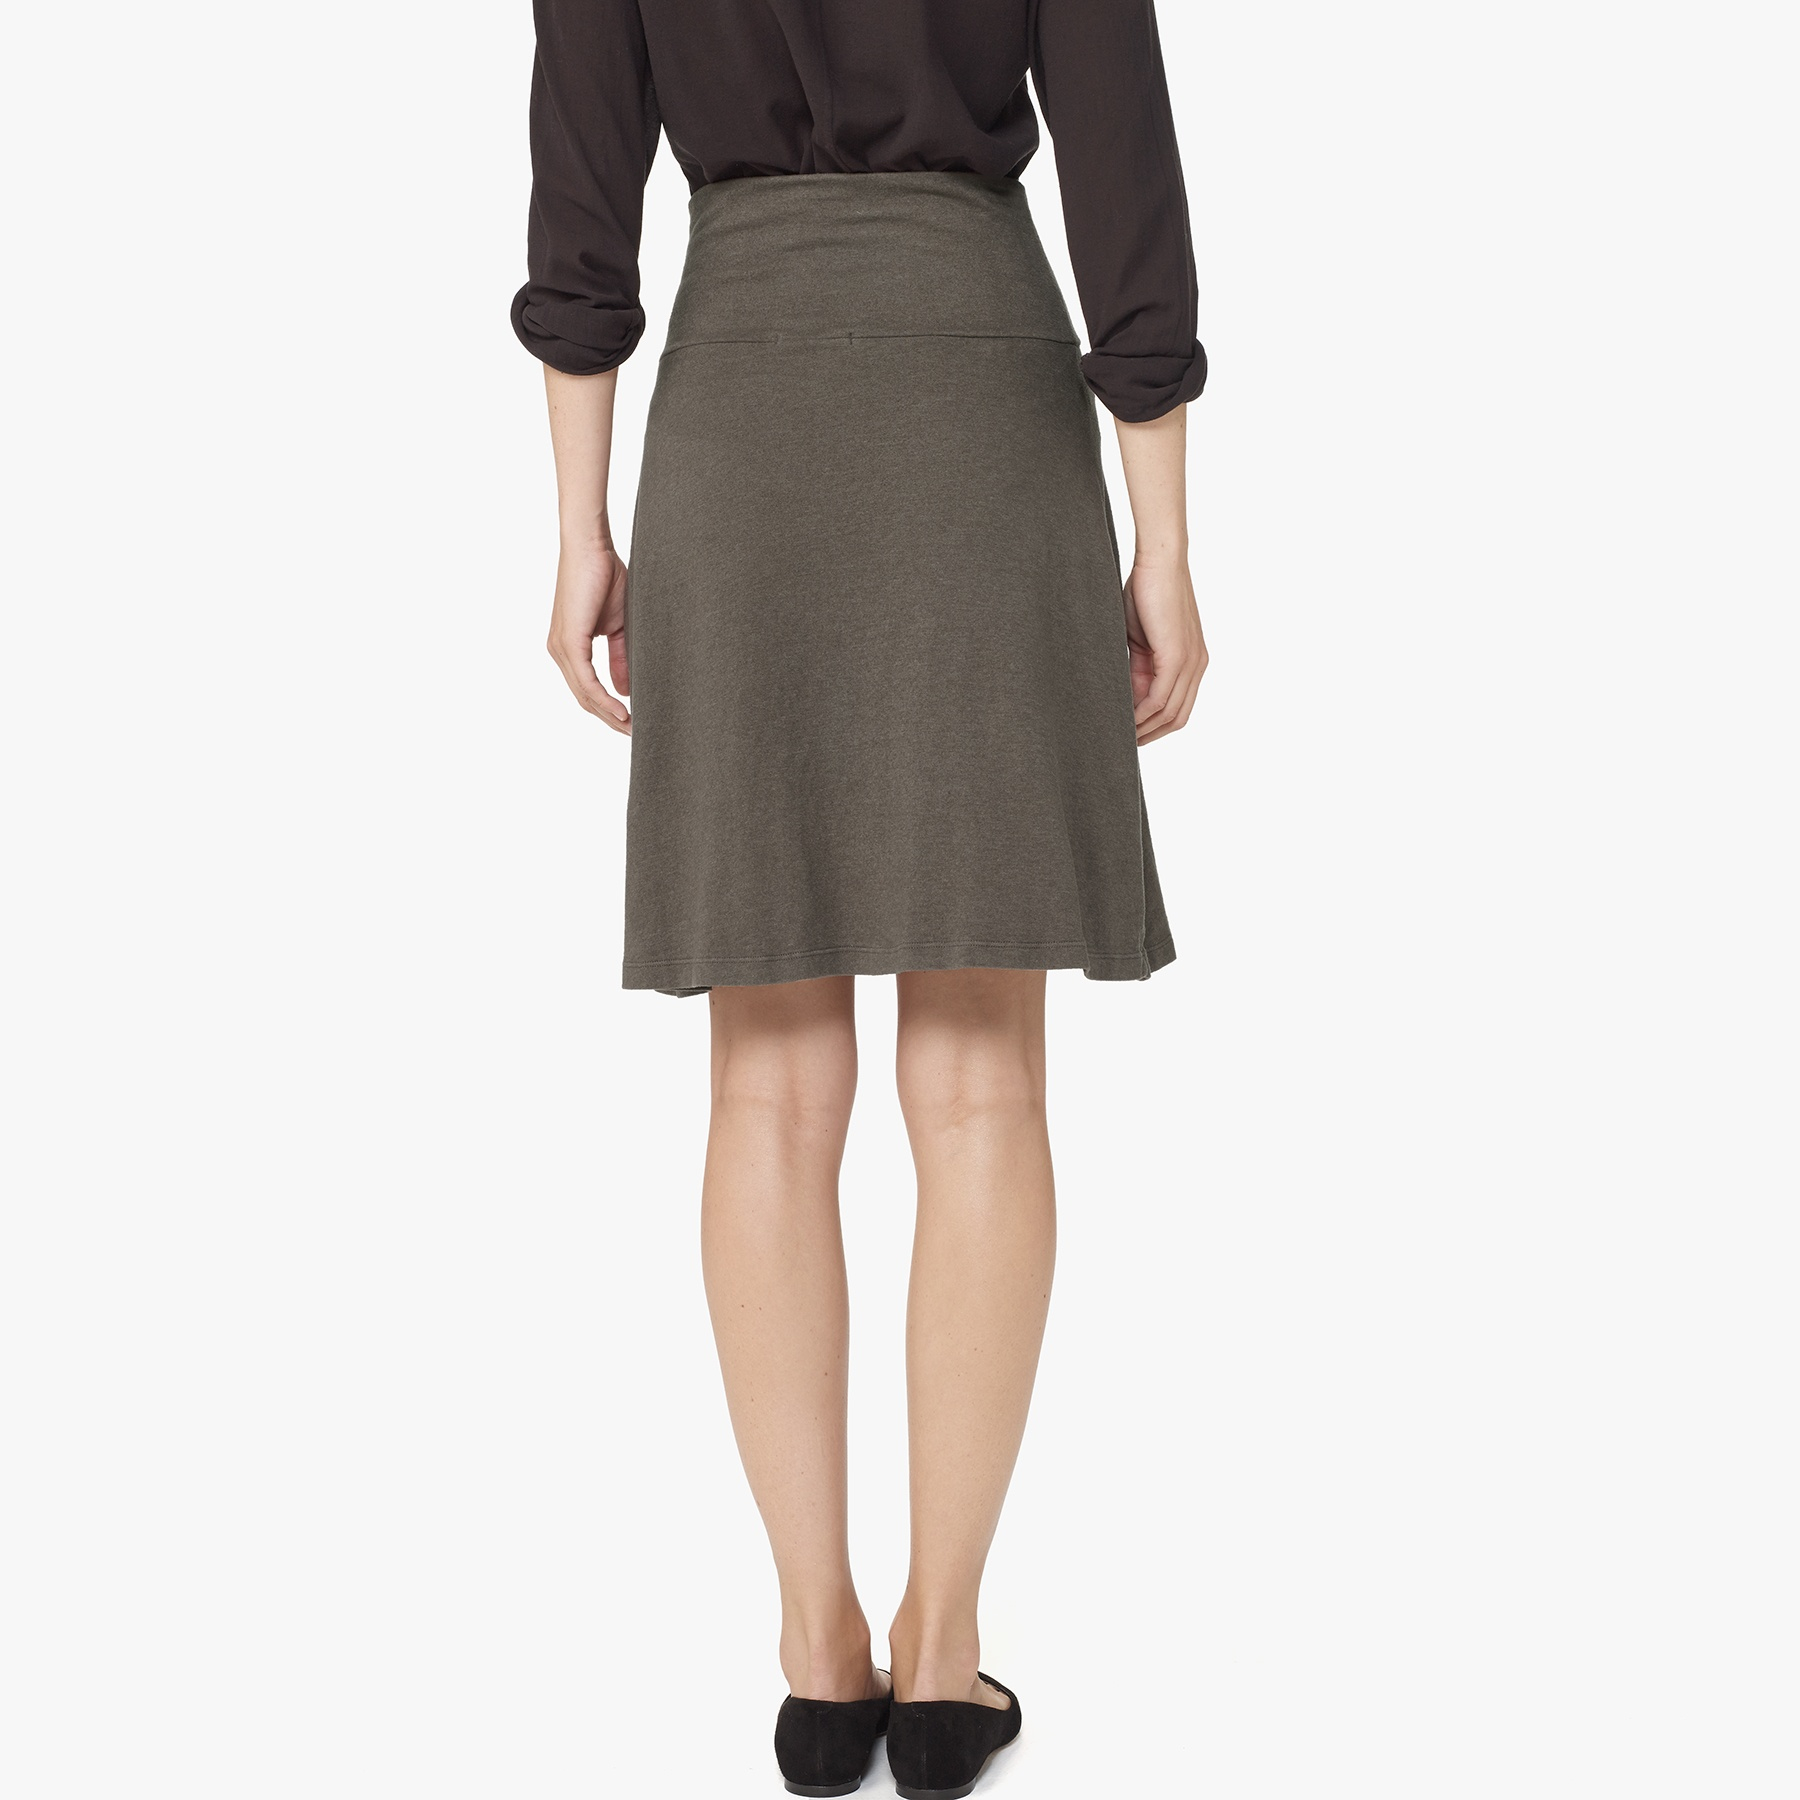 Looking for a new skirt? From slim-fitting pencil skirts for women to ankle-skimming maxi skirts, you'll find dozens of options at JCPenney in our women's skirts collection for updating your fall wardrobe with this basic style staple. Shop and save today!